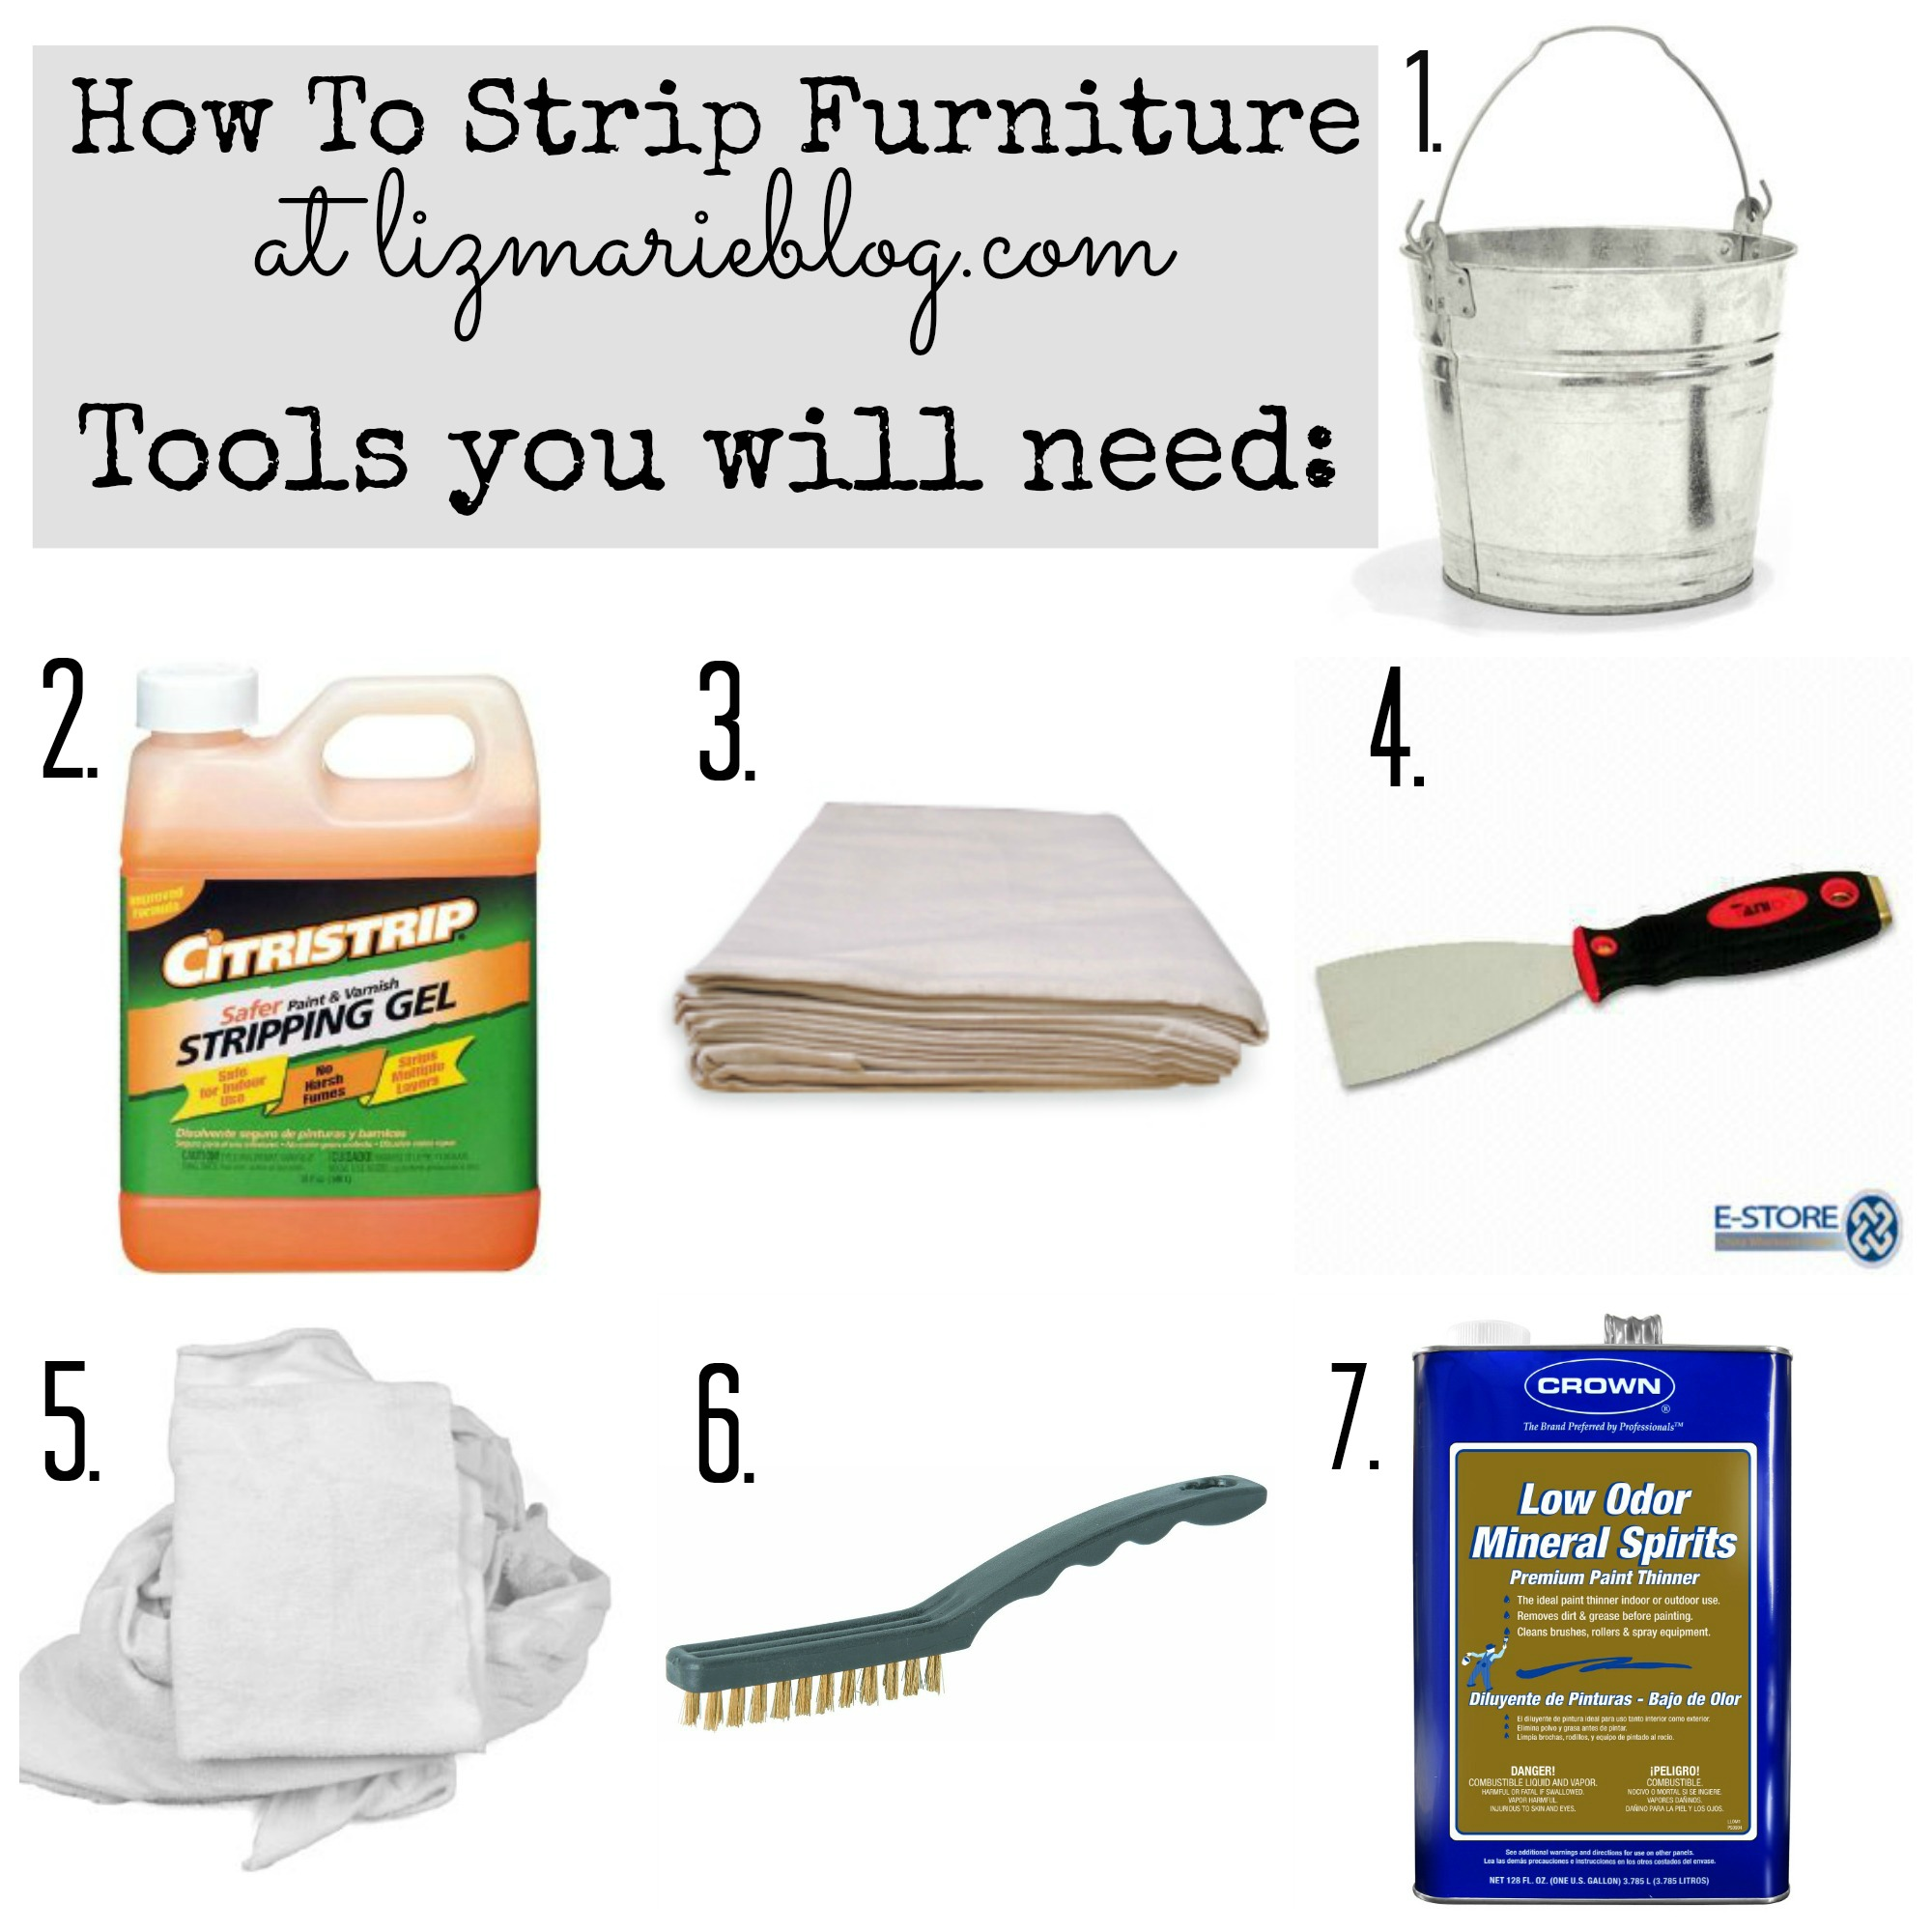 Tools you'll need to strip painted furniture